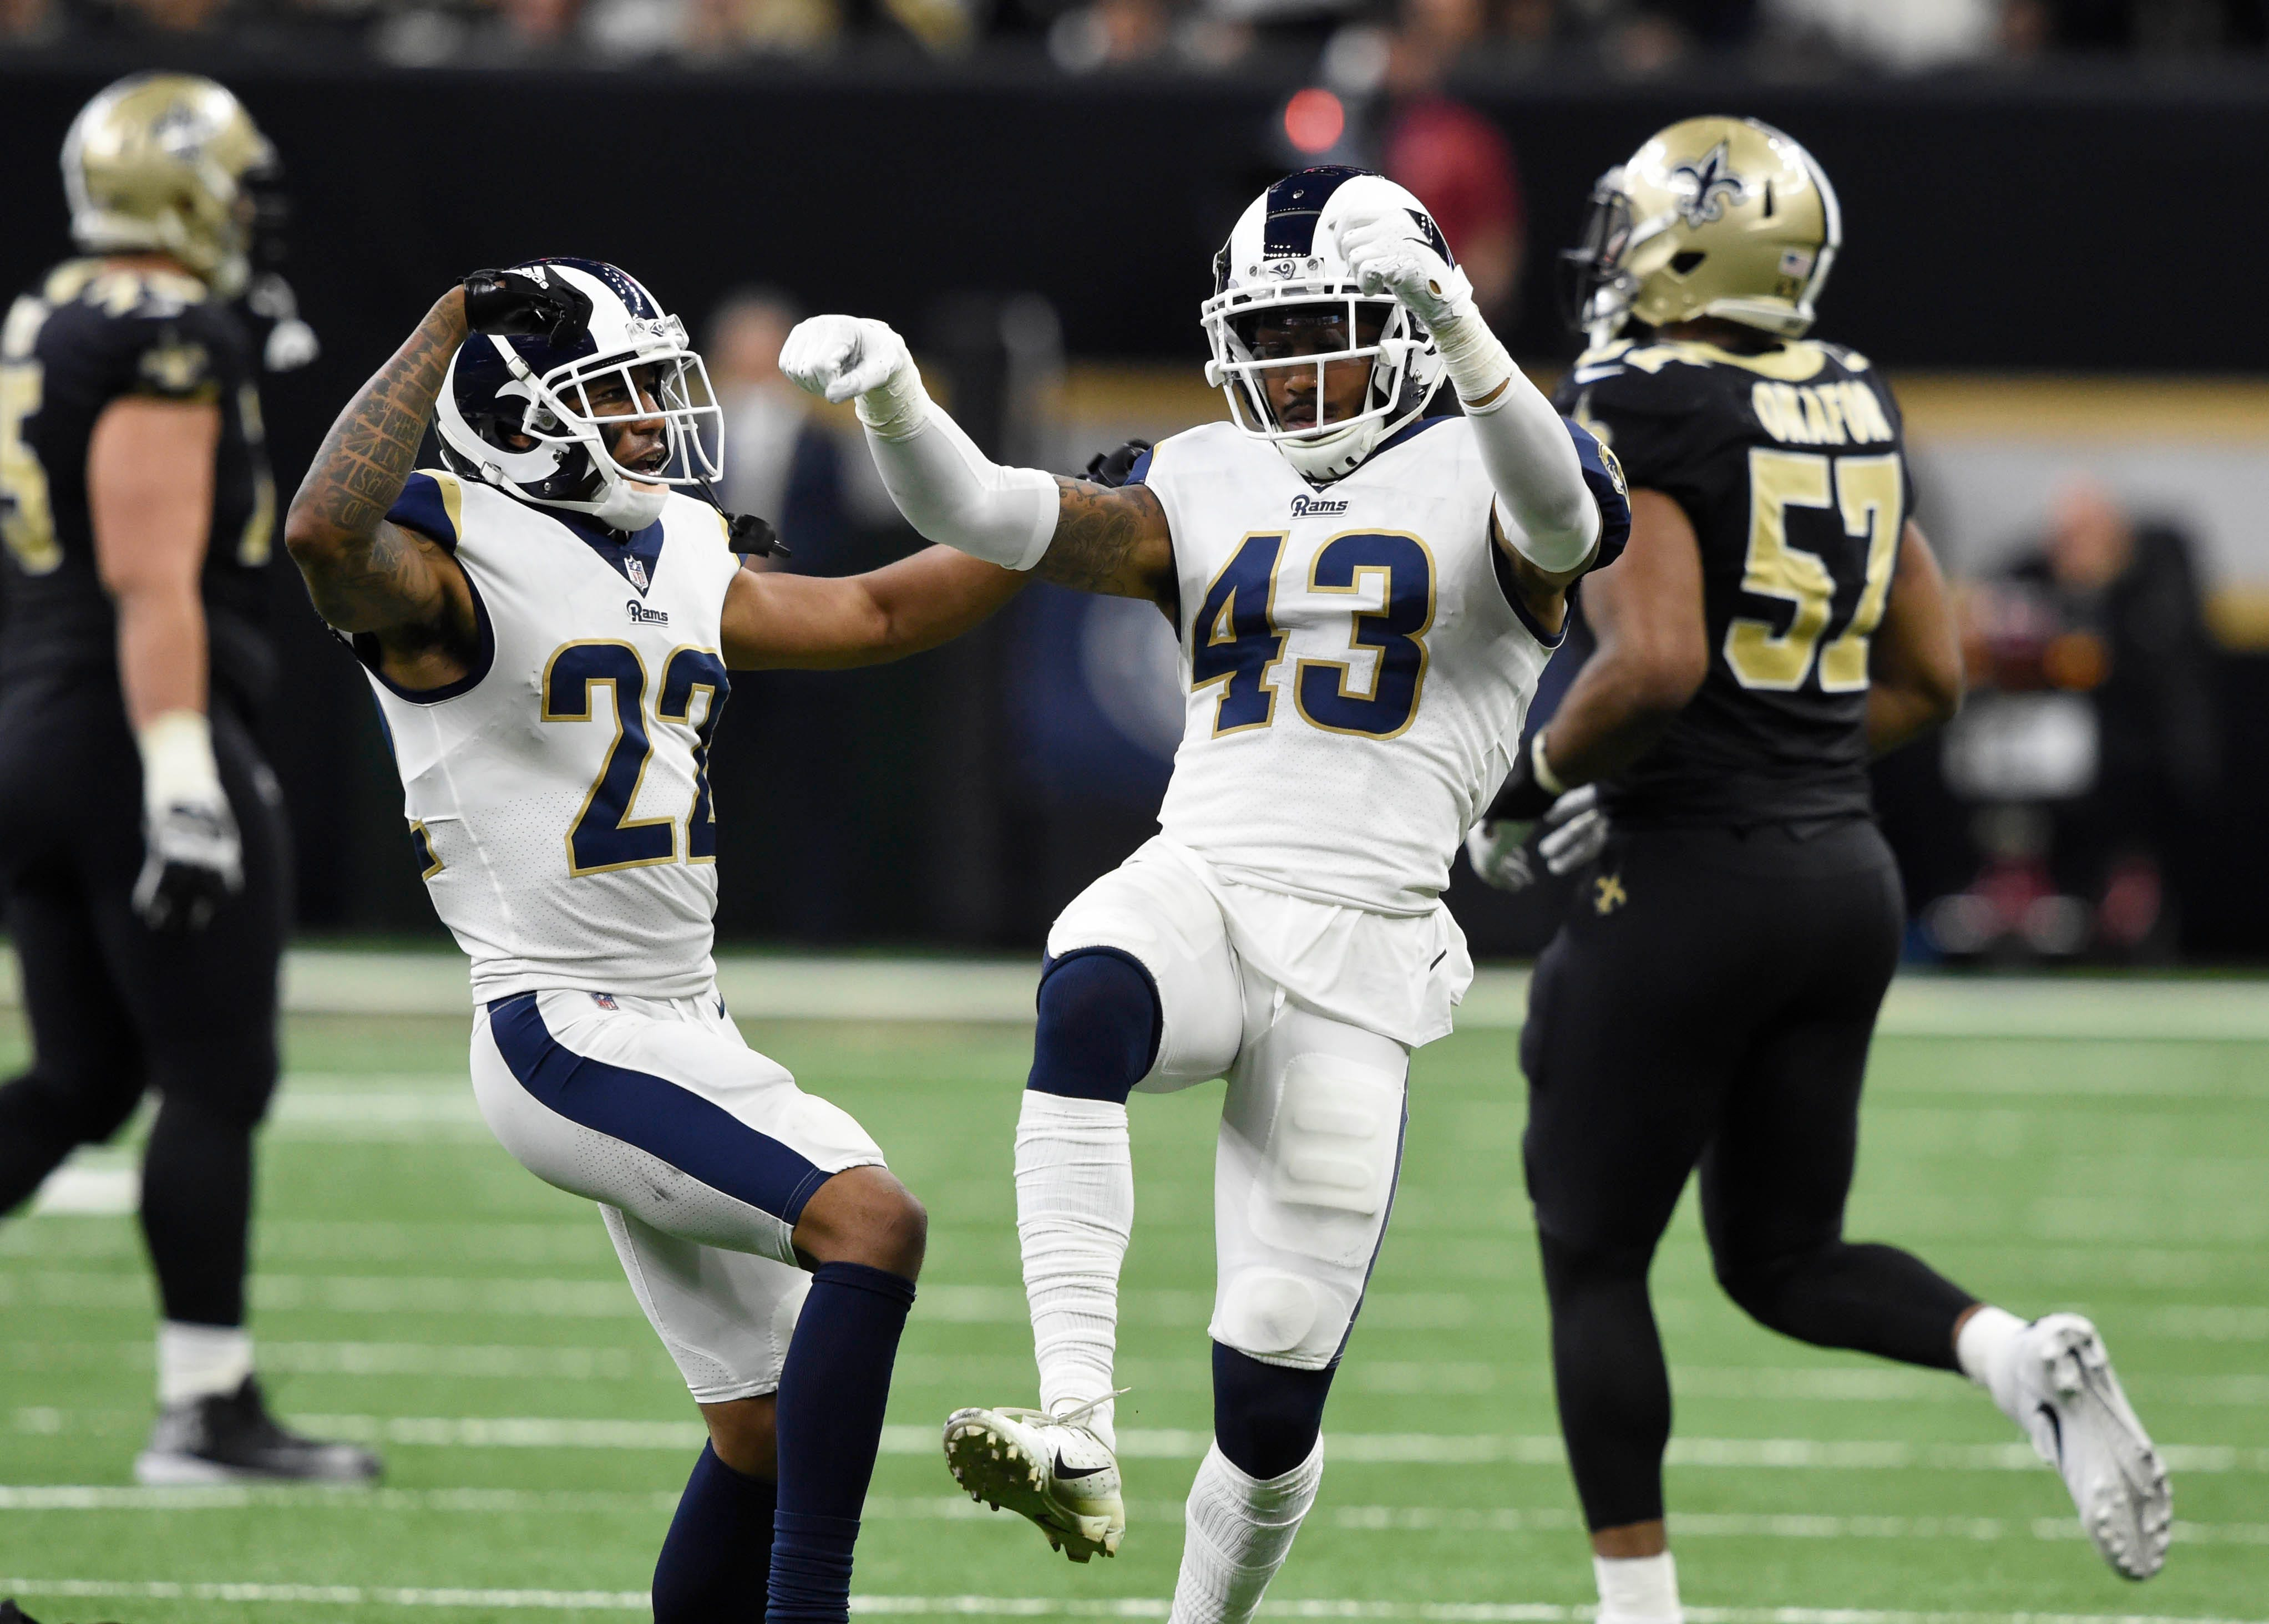 Opinion: Rams did more so much more than benefit from no-call to reach Super Bowl